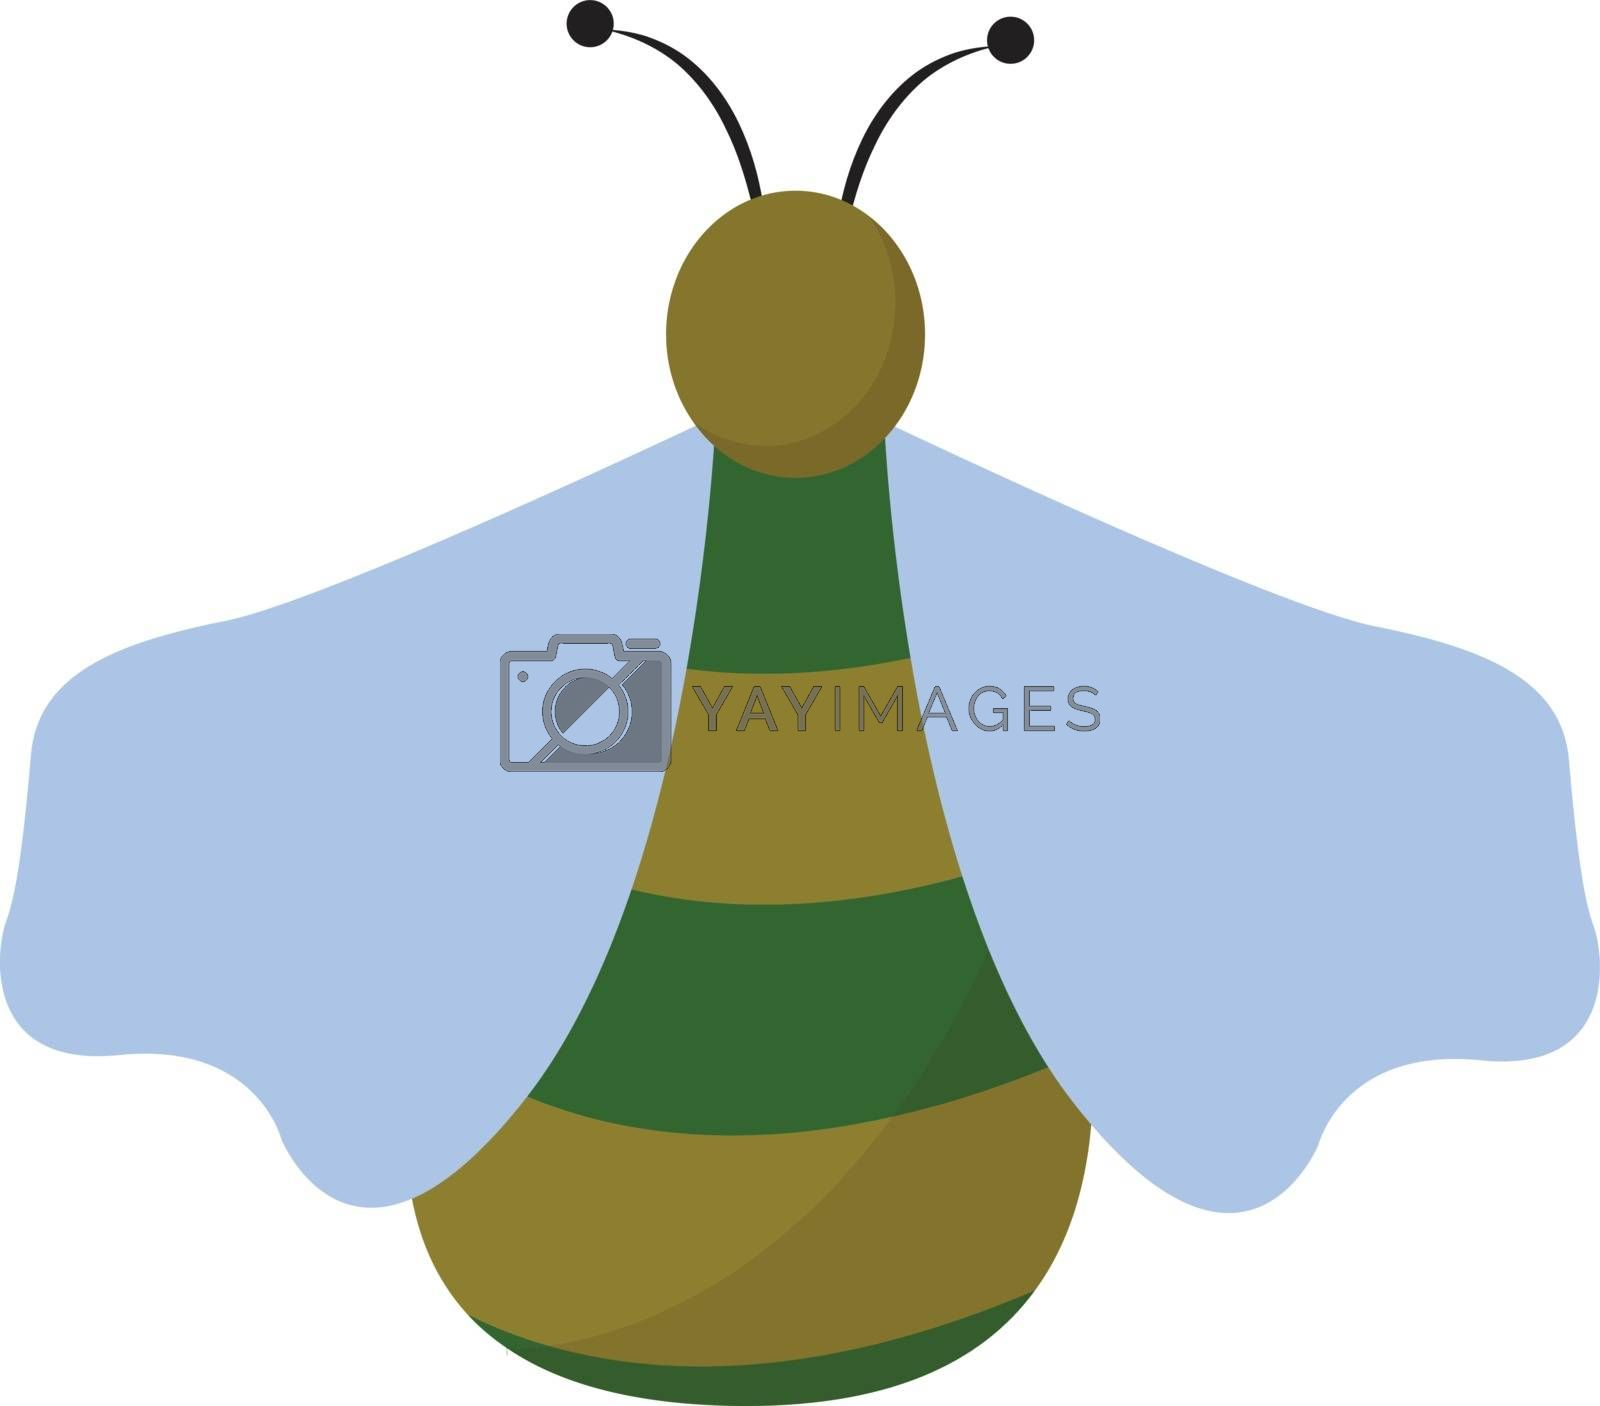 Royalty free image of Clipart of a green bug set on isolated white background viewed f by Morphart